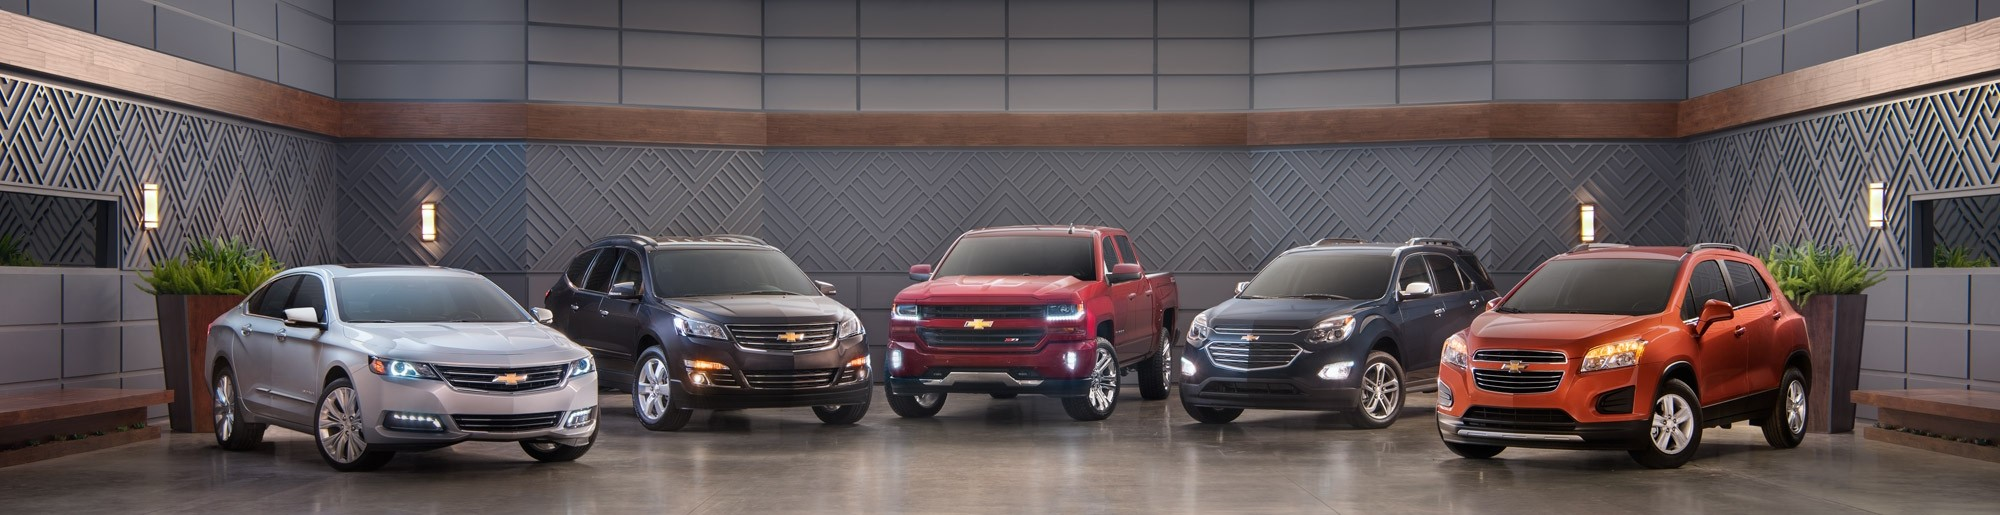 Chevy Line Up